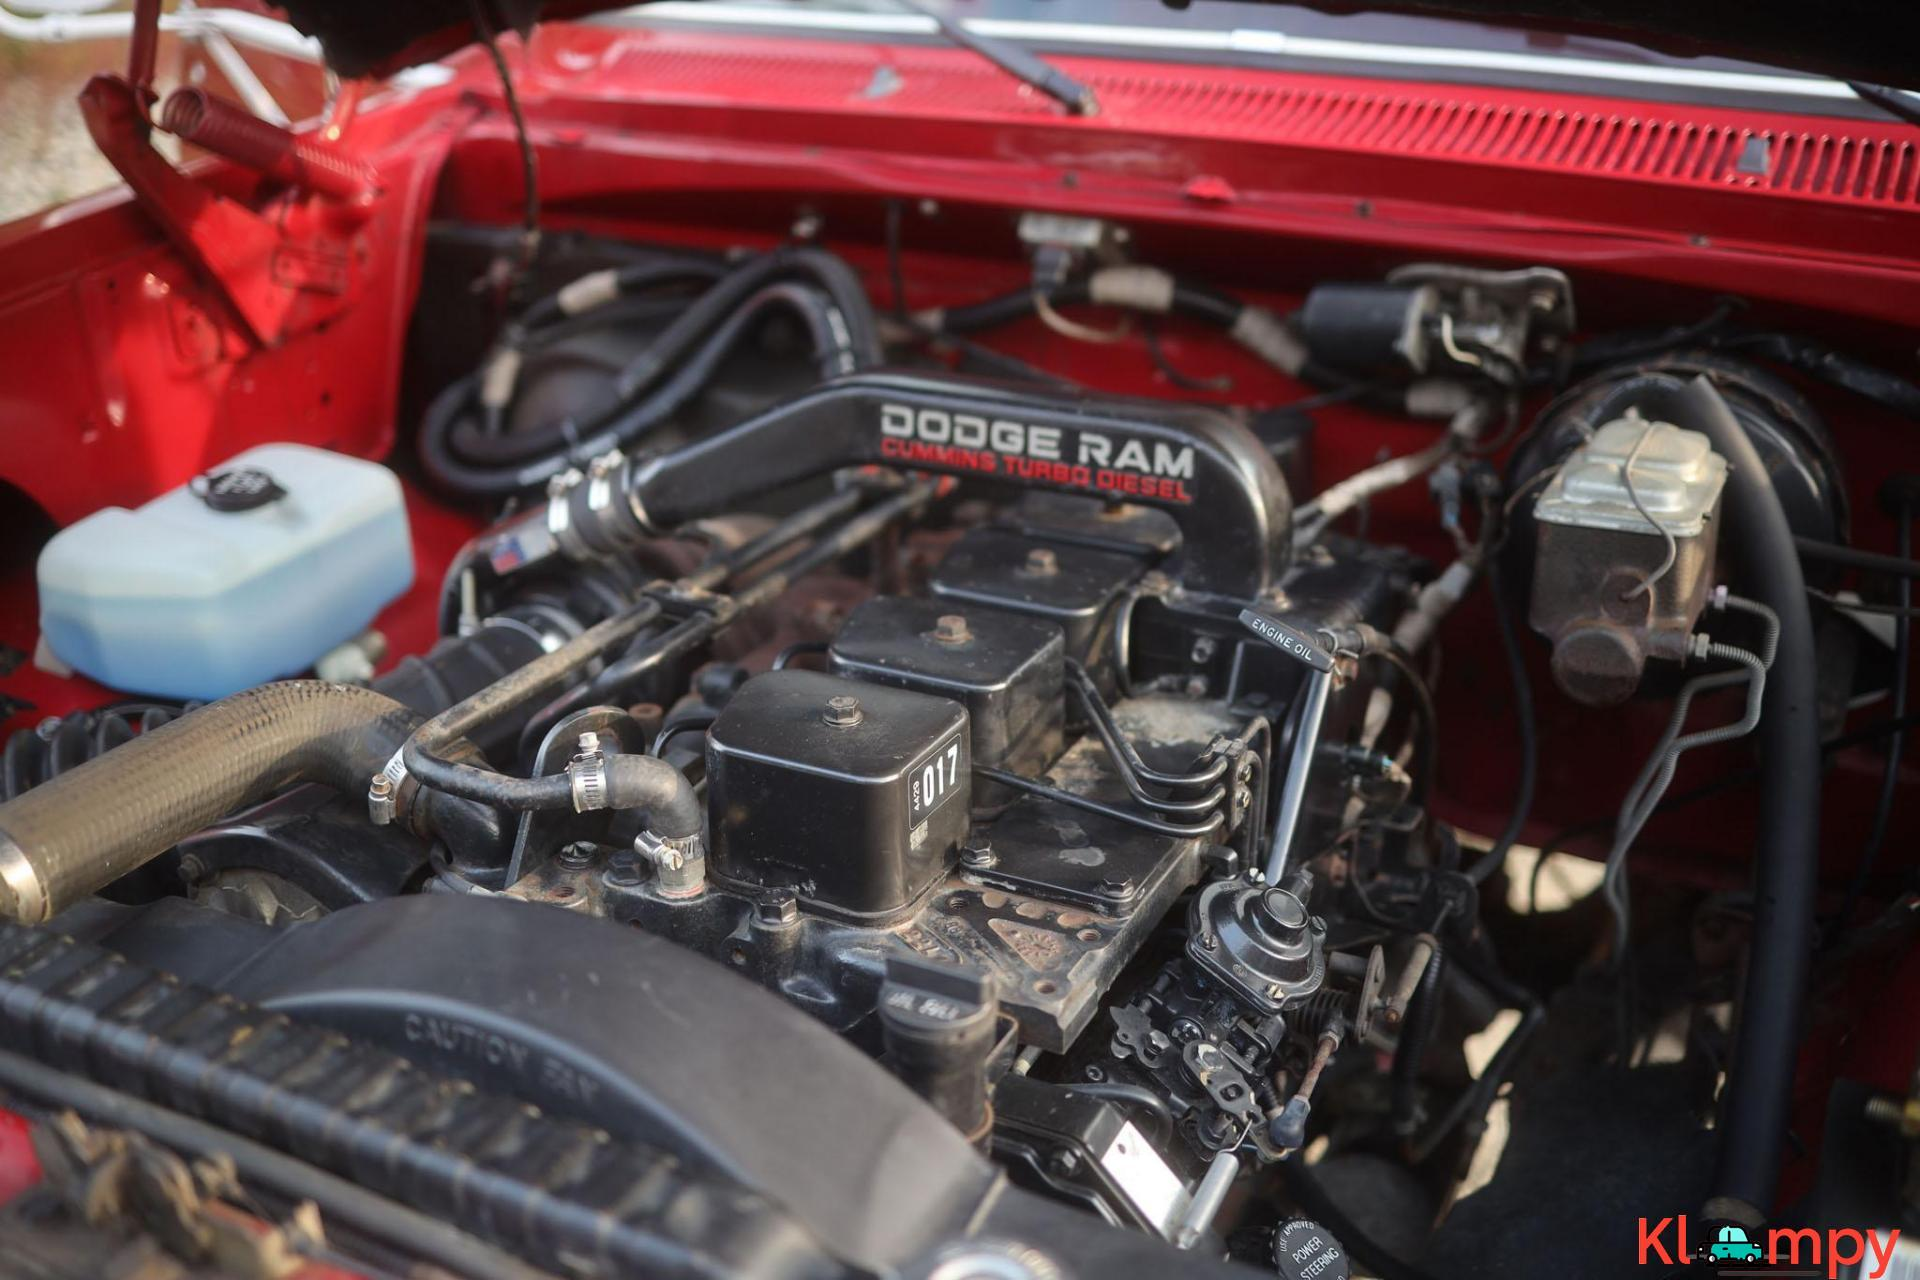 1989 Dodge Power Ram W350 4×4 Truck - 16/20